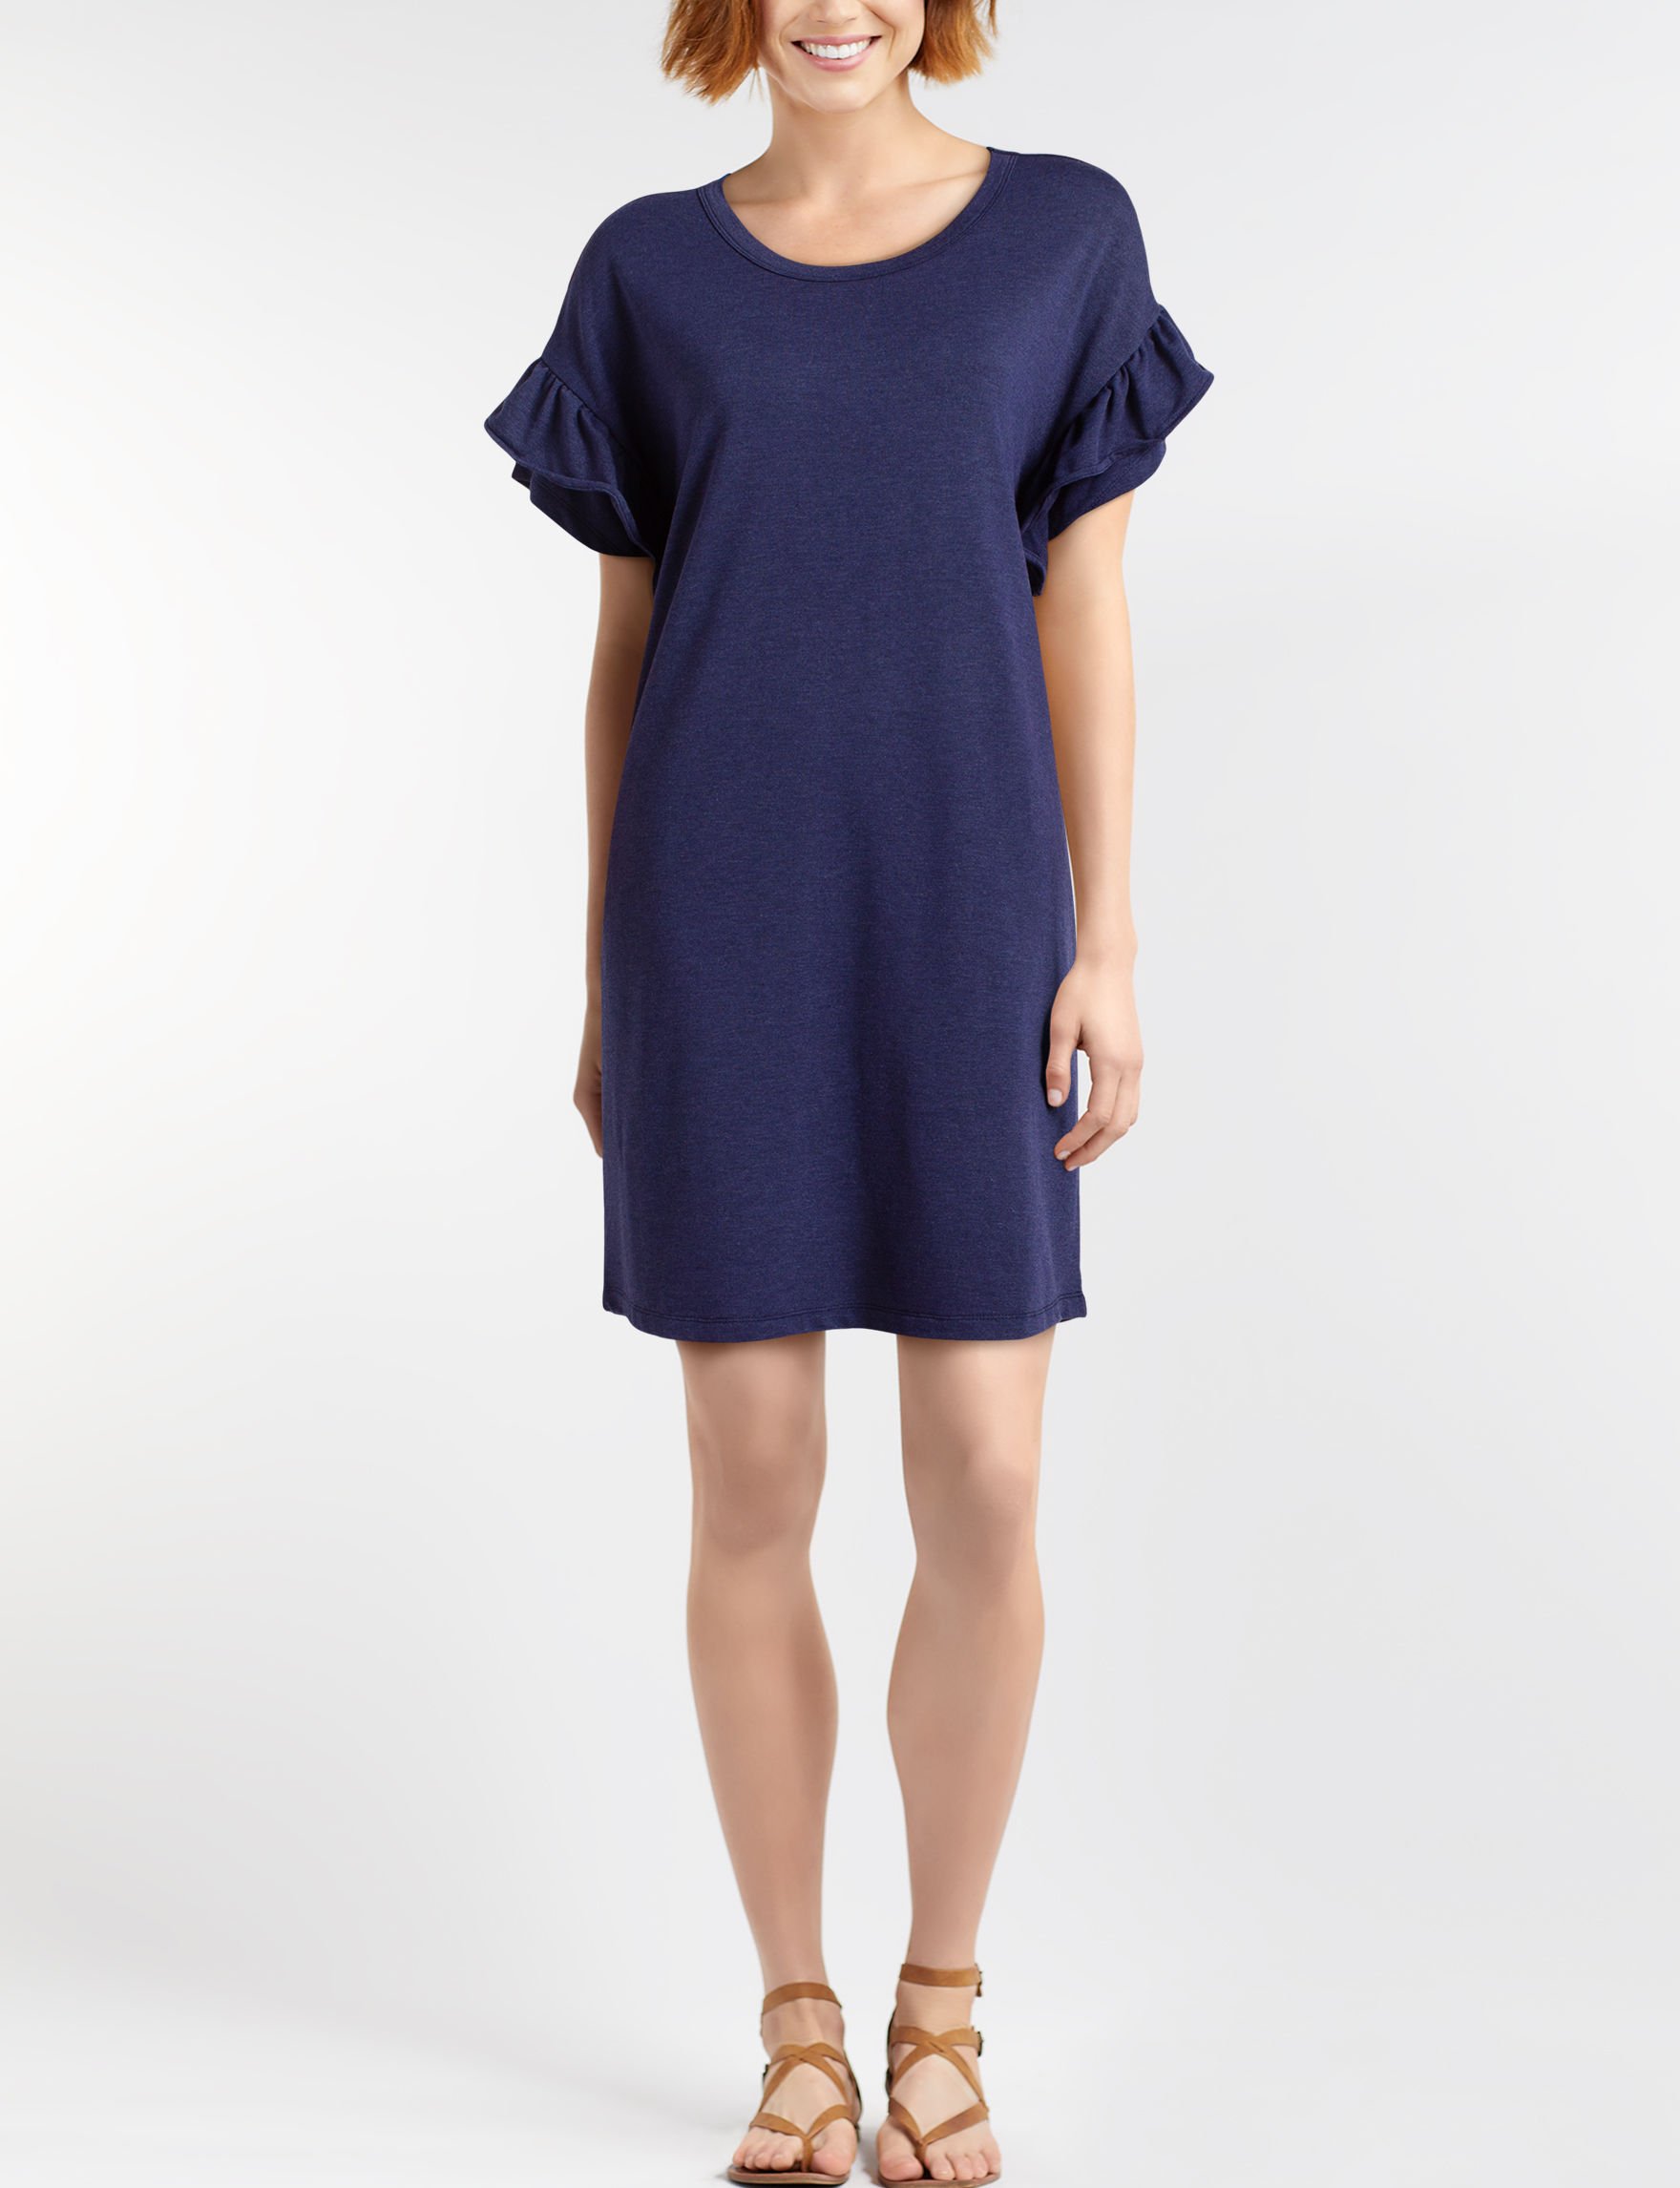 One World Blue Everyday & Casual Shift Dresses